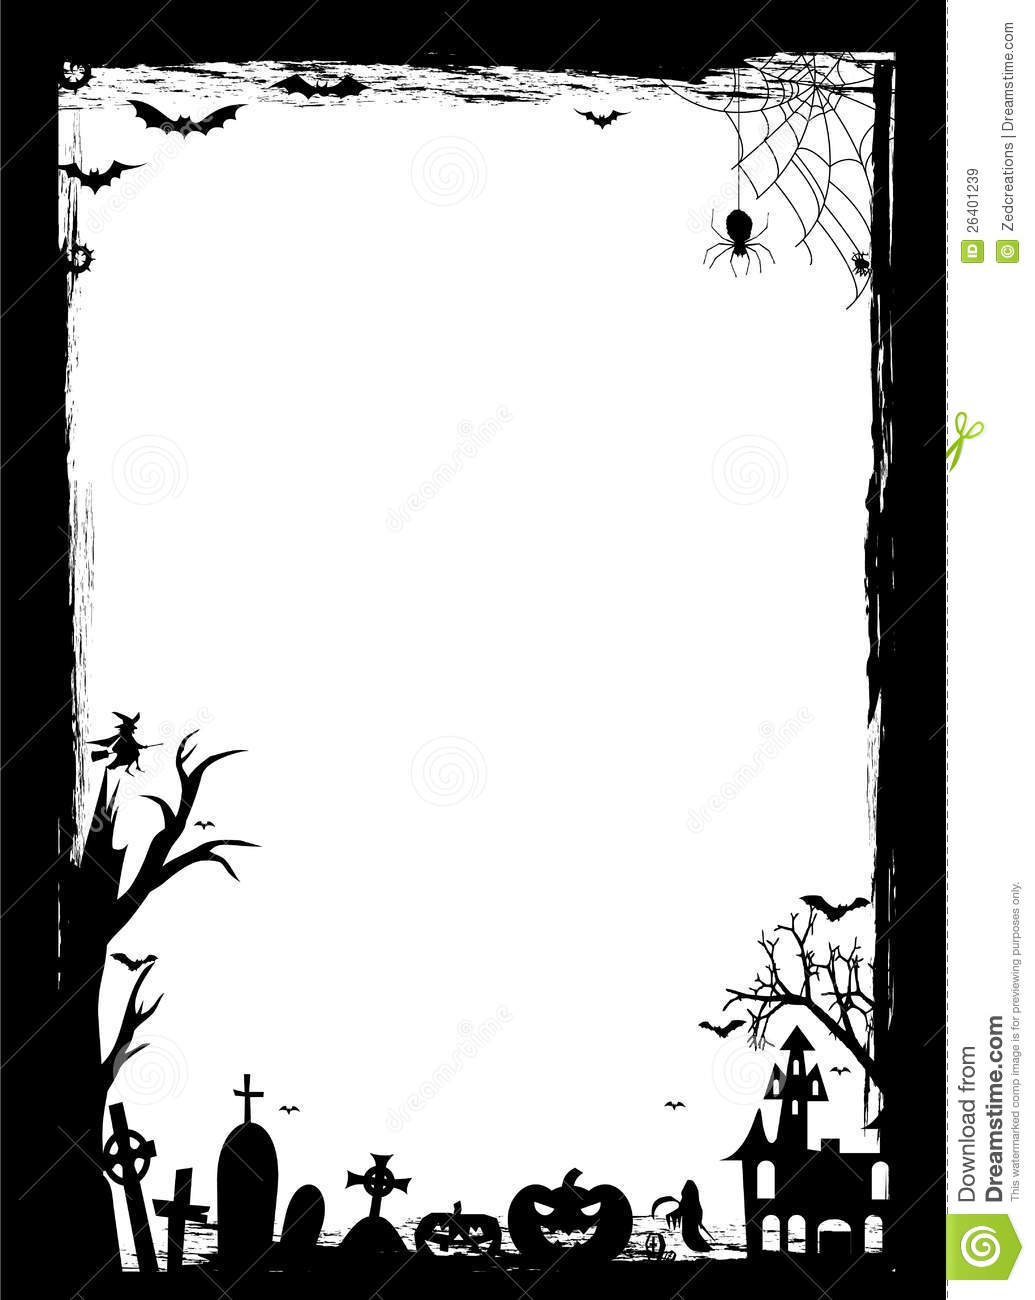 halloween border stock vector. illustration of fantasy - 26401239